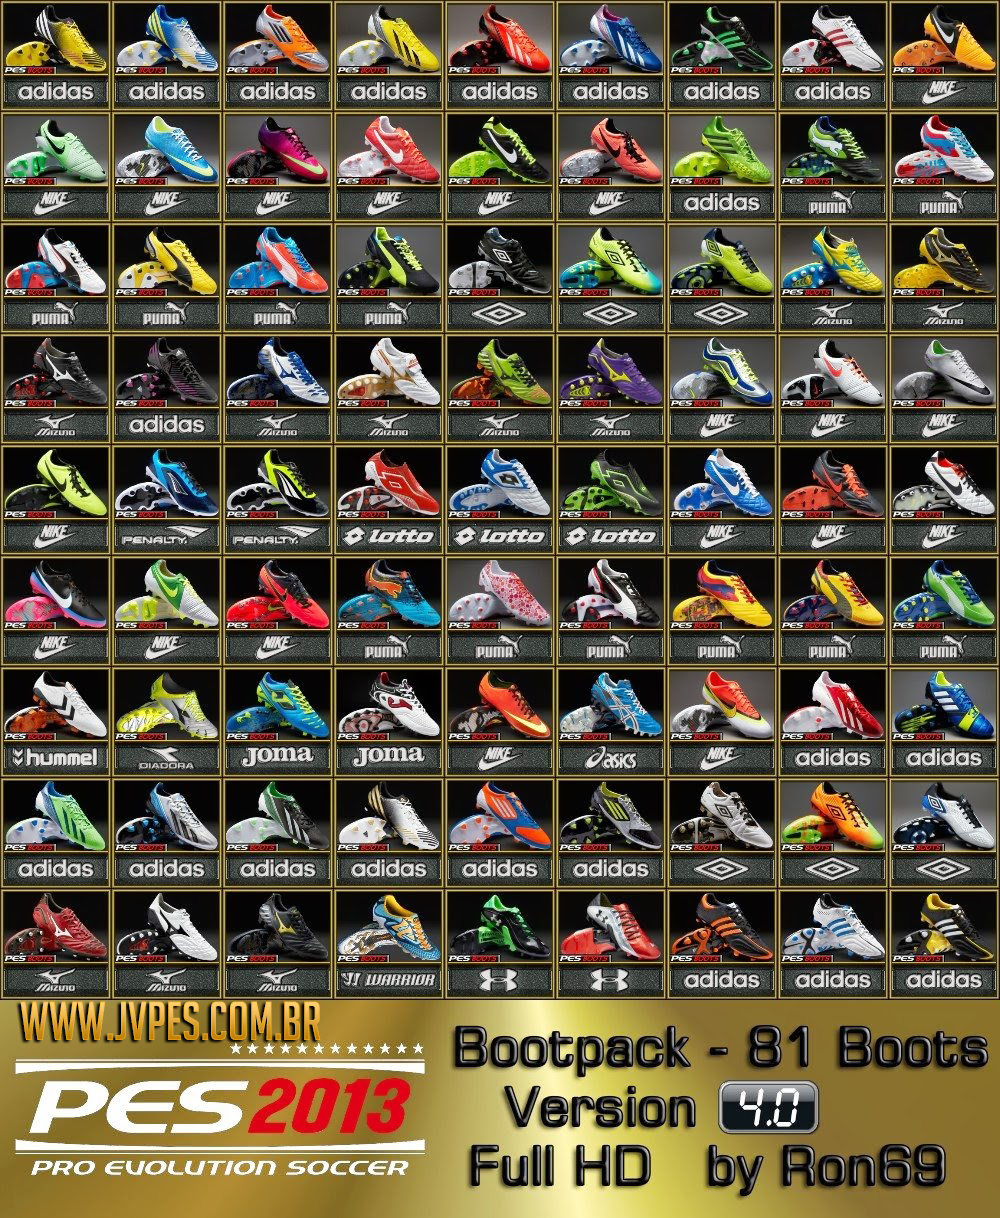 Bootpack 4.0 Full HD by RON69 para PES 2013